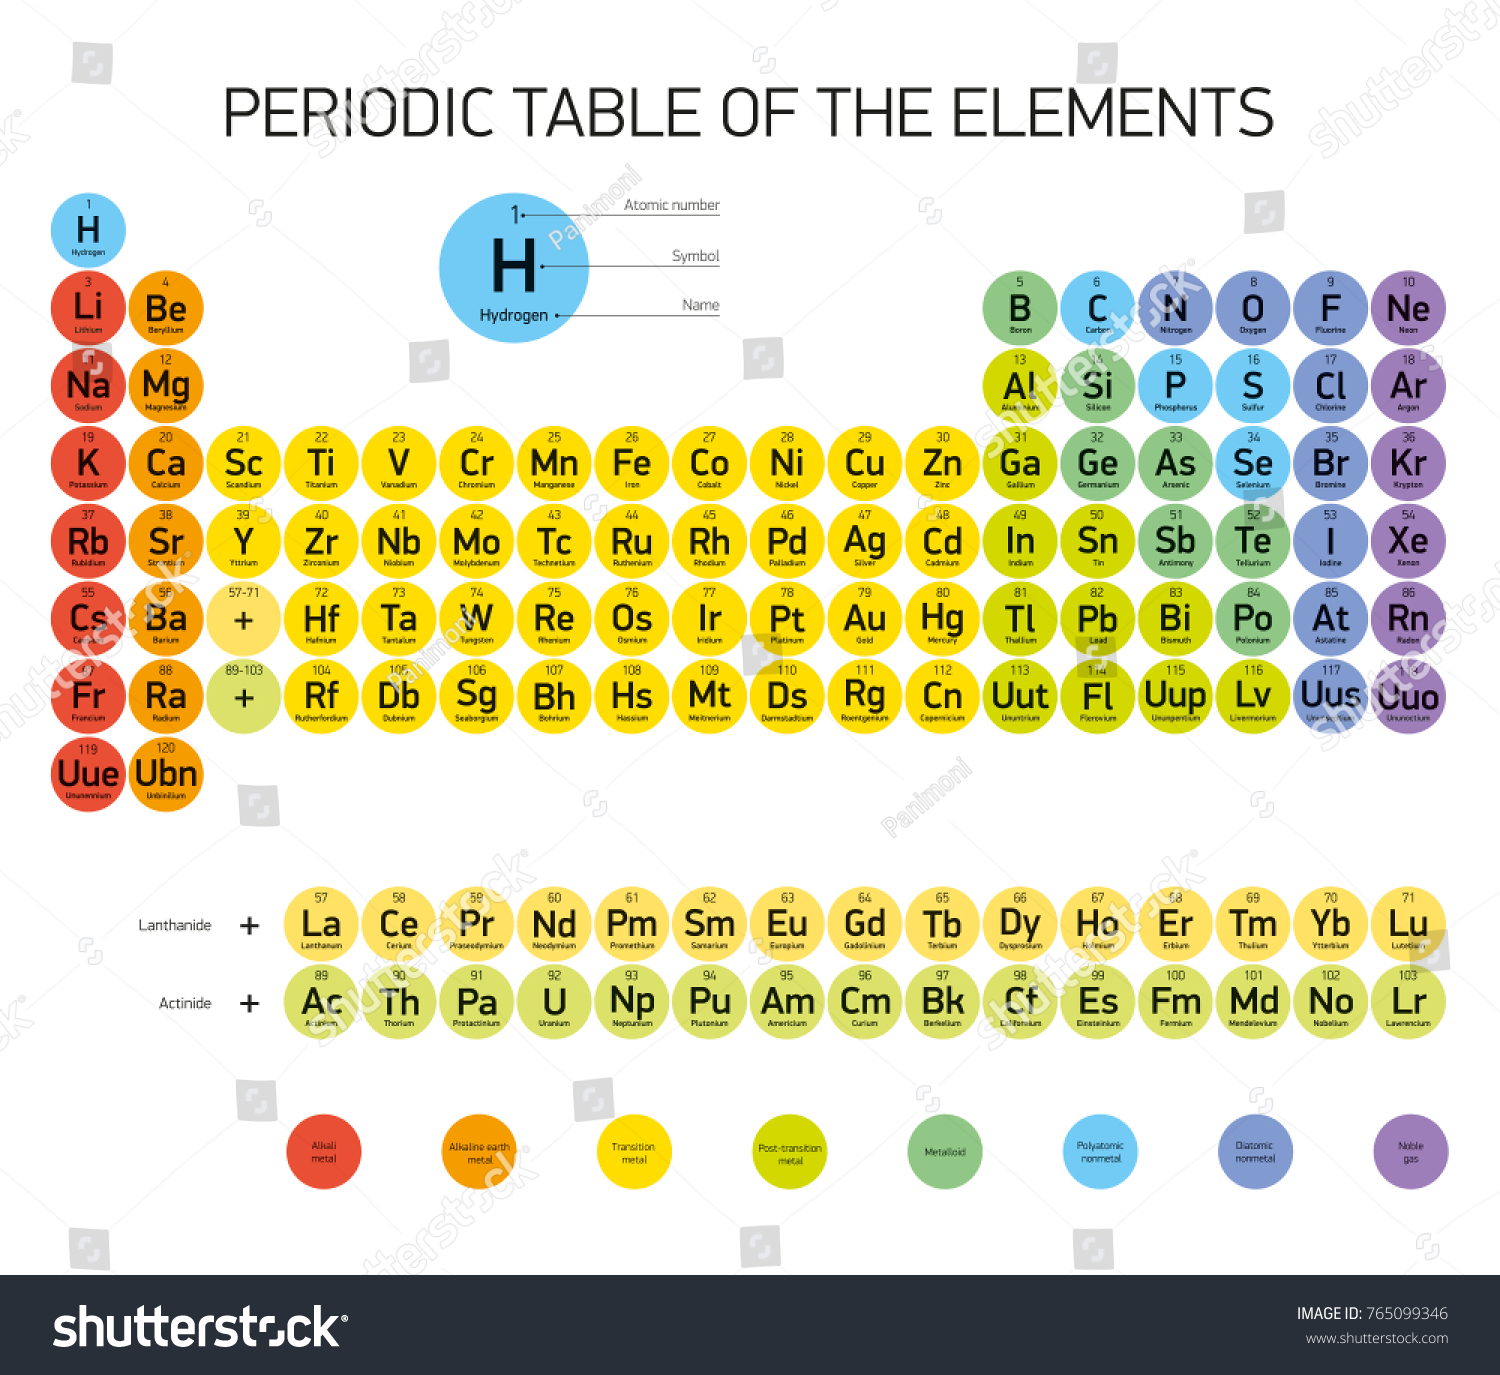 Periodic table elements vector design extended stock vector periodic table of the elements vector design extended version new elements cmyk gamestrikefo Image collections